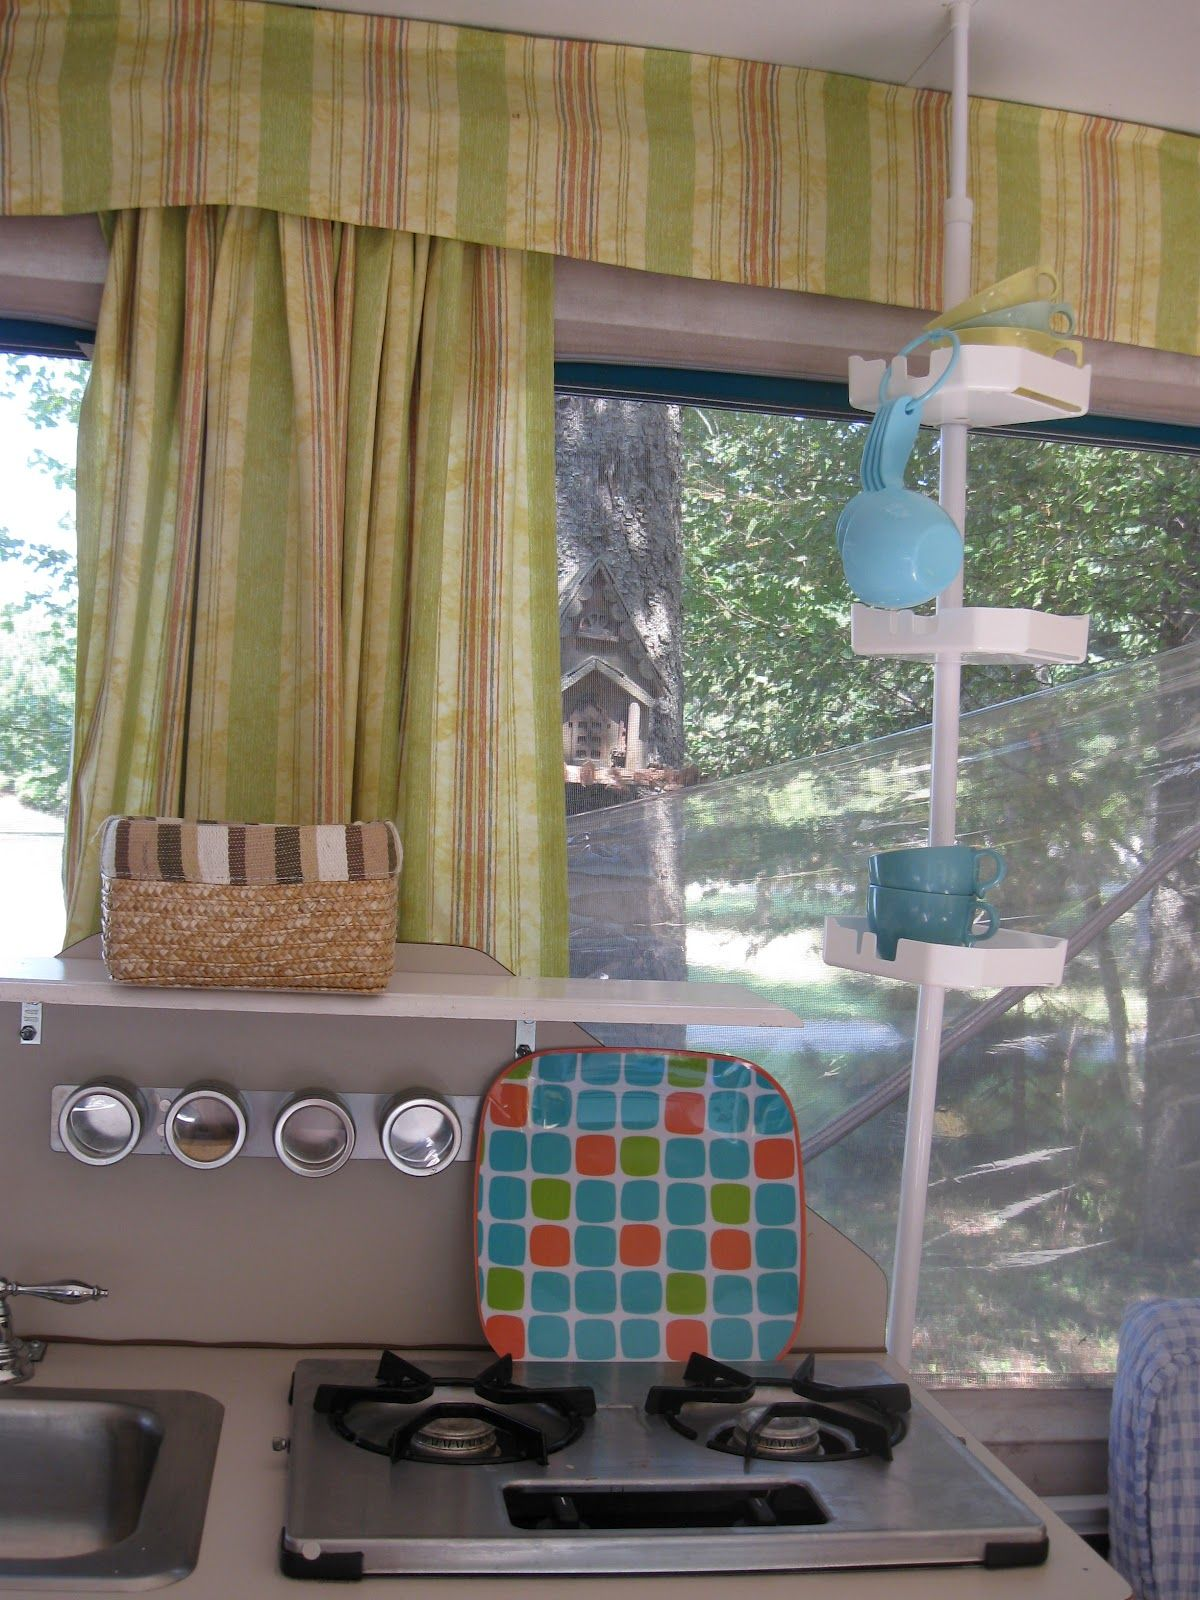 Shower Curtain Rod For Storage In Pop Up Camper Picture Borrowed From Thehousewecallhomeblogspot